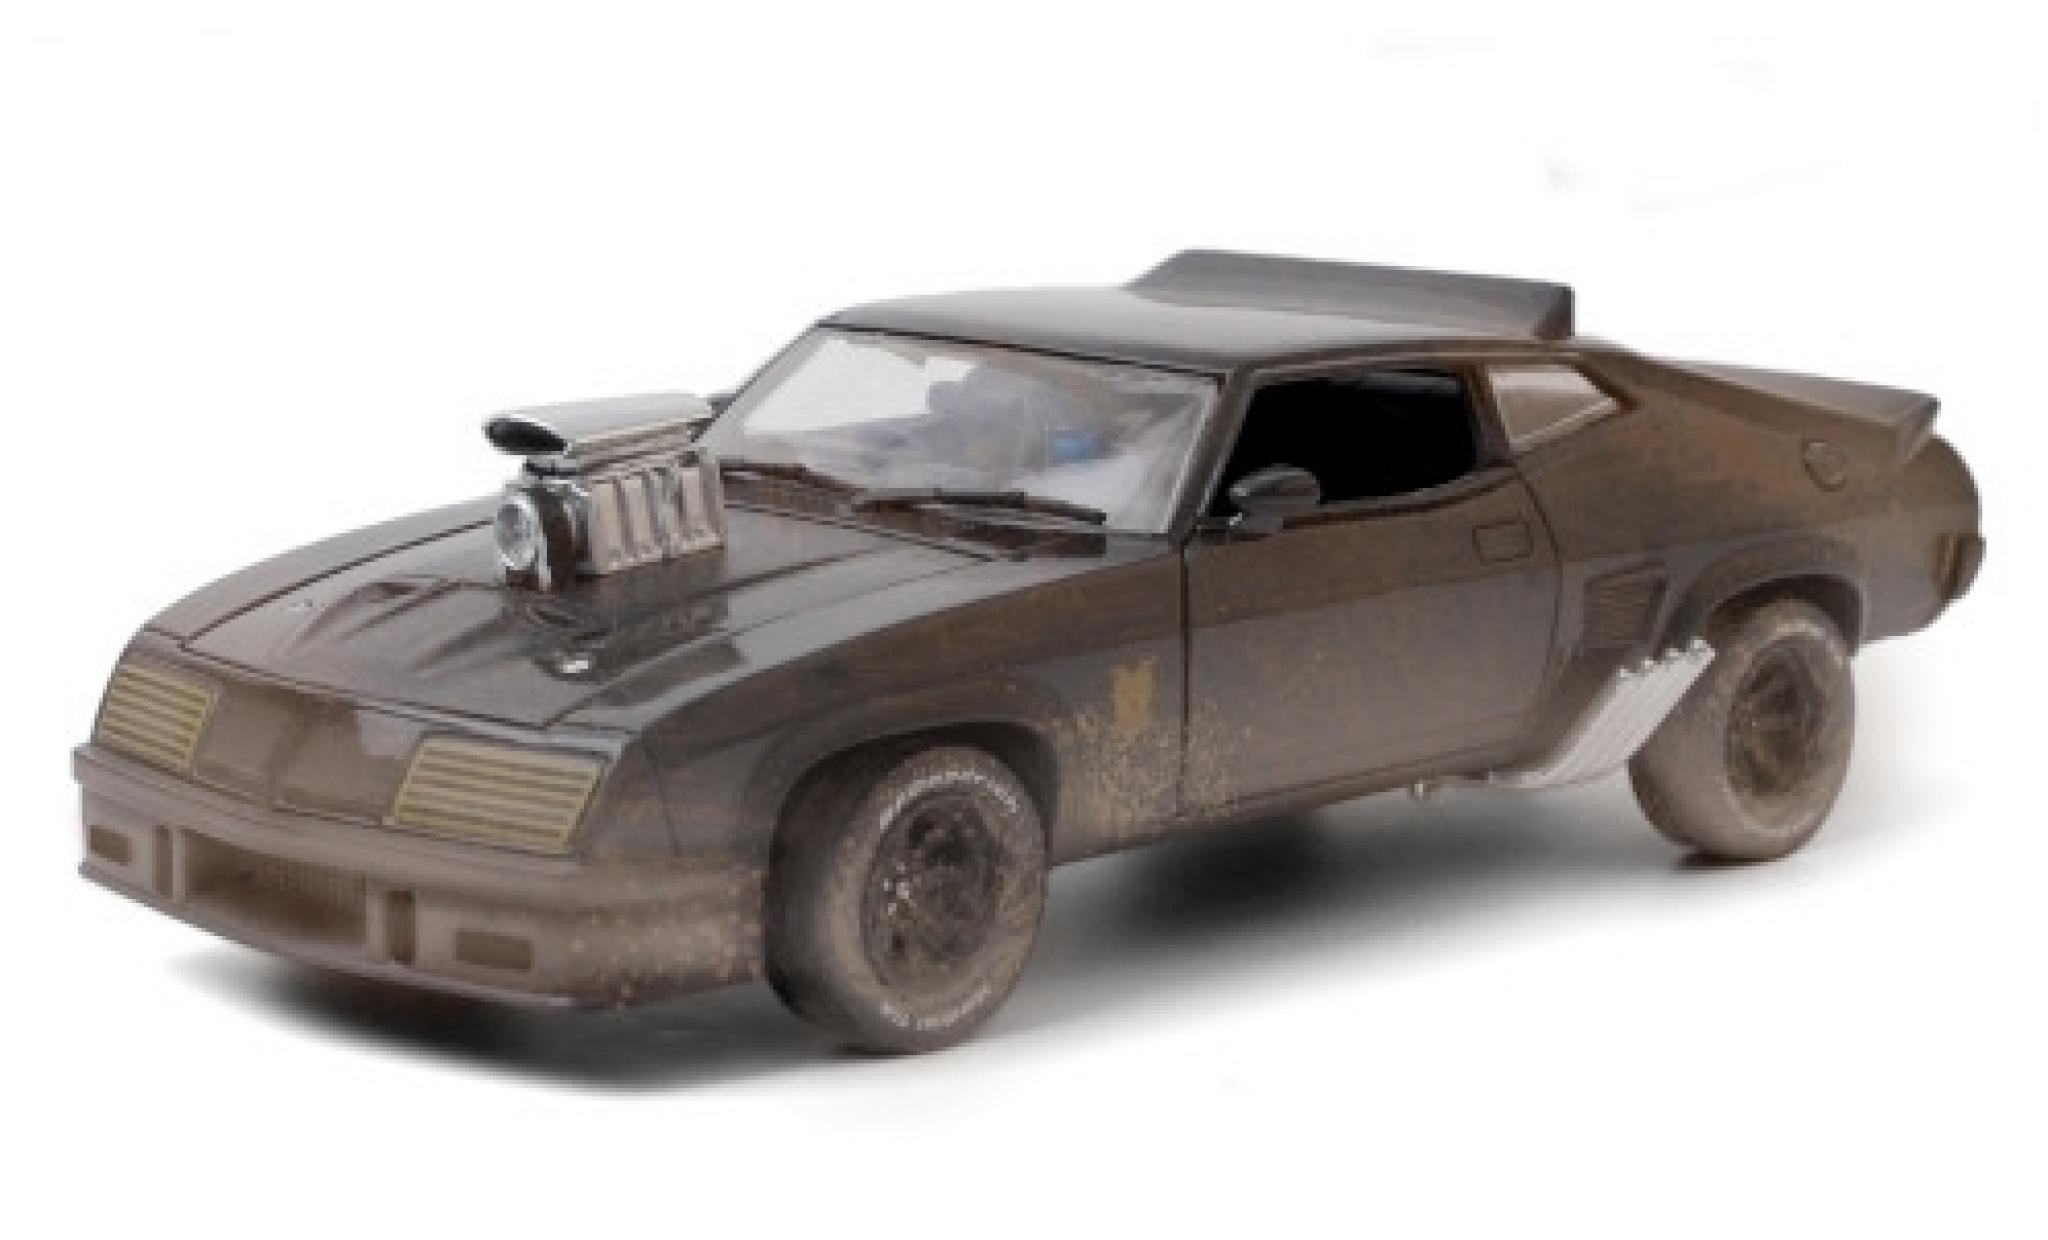 Ford Falcon 1/24 Greenlight XB noire RHD Mad Max - Last of the V8 Interceptors 1973 avec Witterungsspuren